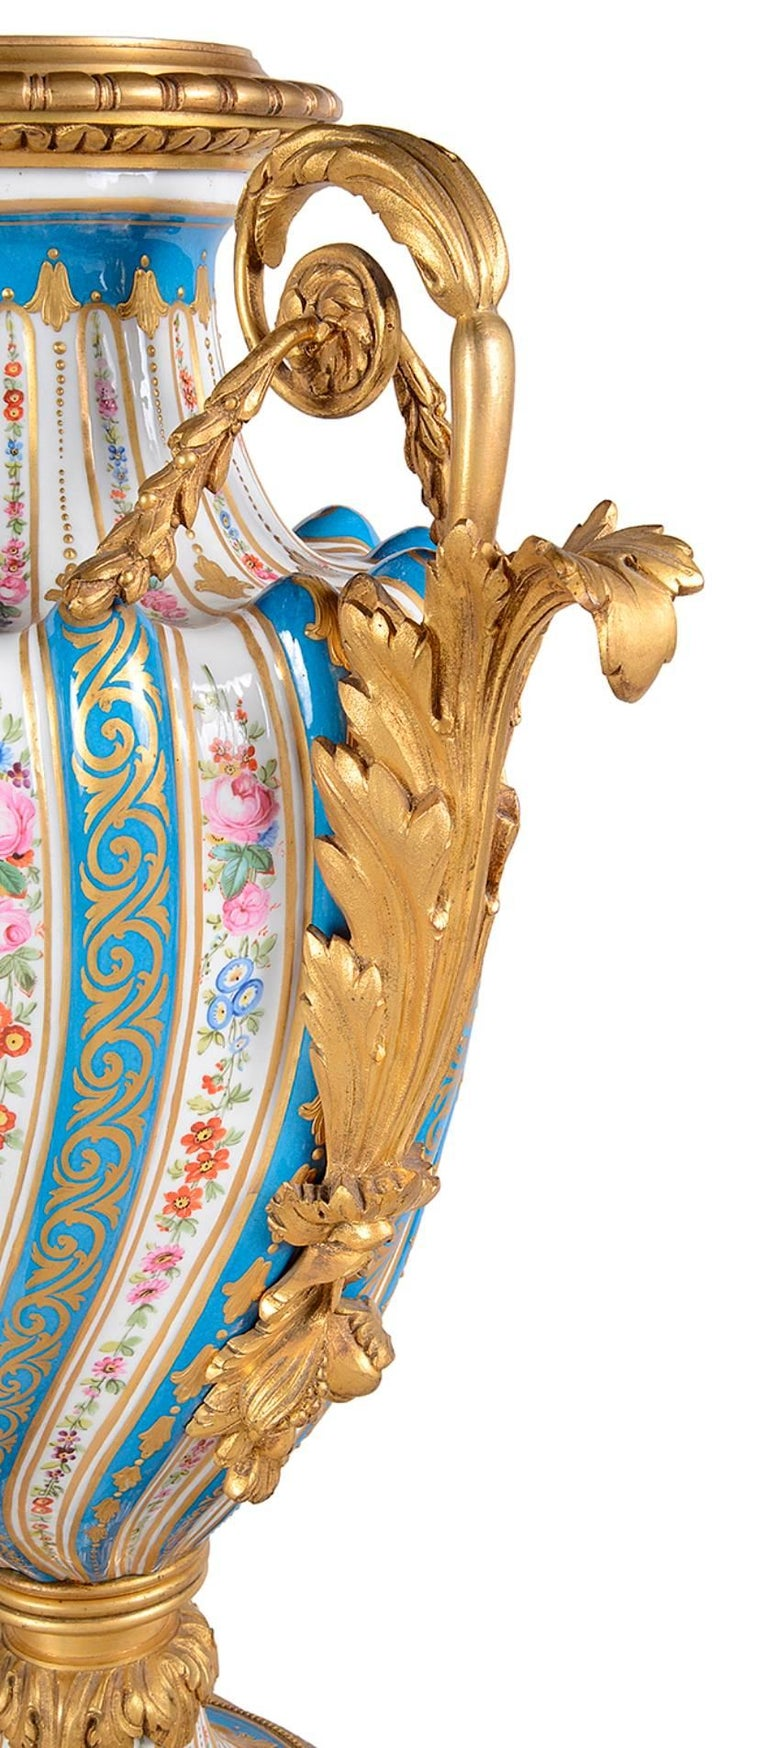 Hand-Painted Fine Quality Pair of French Sevres Style Porcelain Vases For Sale